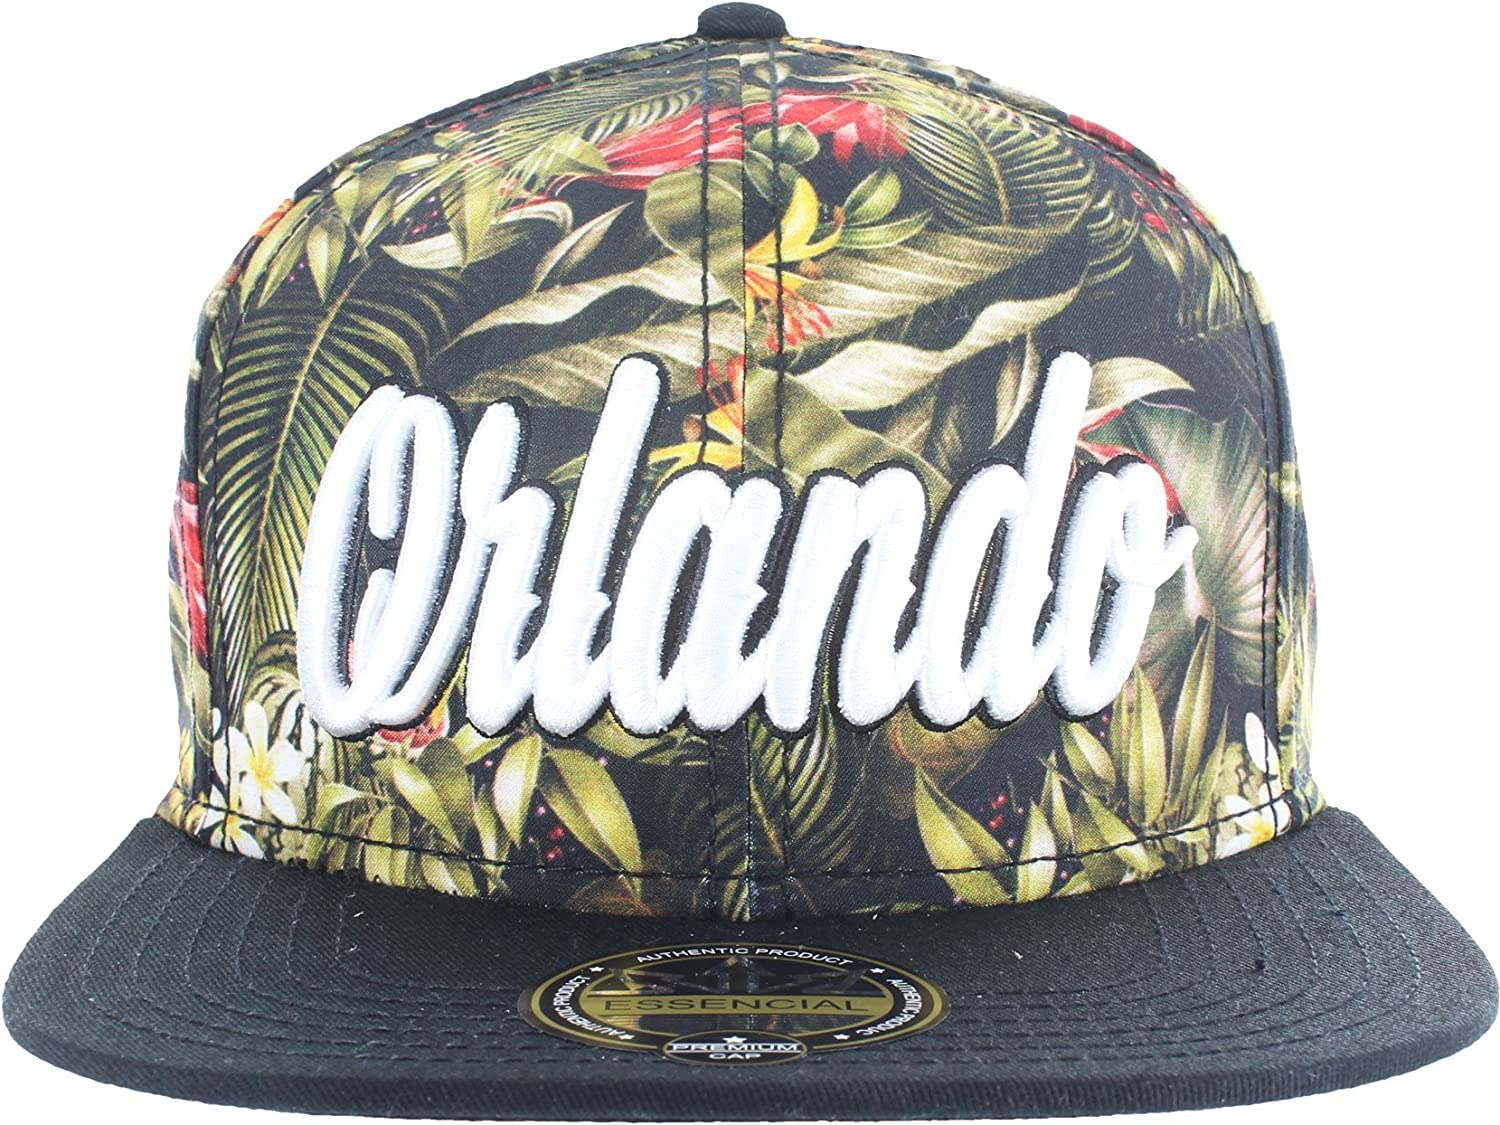 Fashion Floral Snapback Hats Ca - Collection Tulsa free shipping Mall The